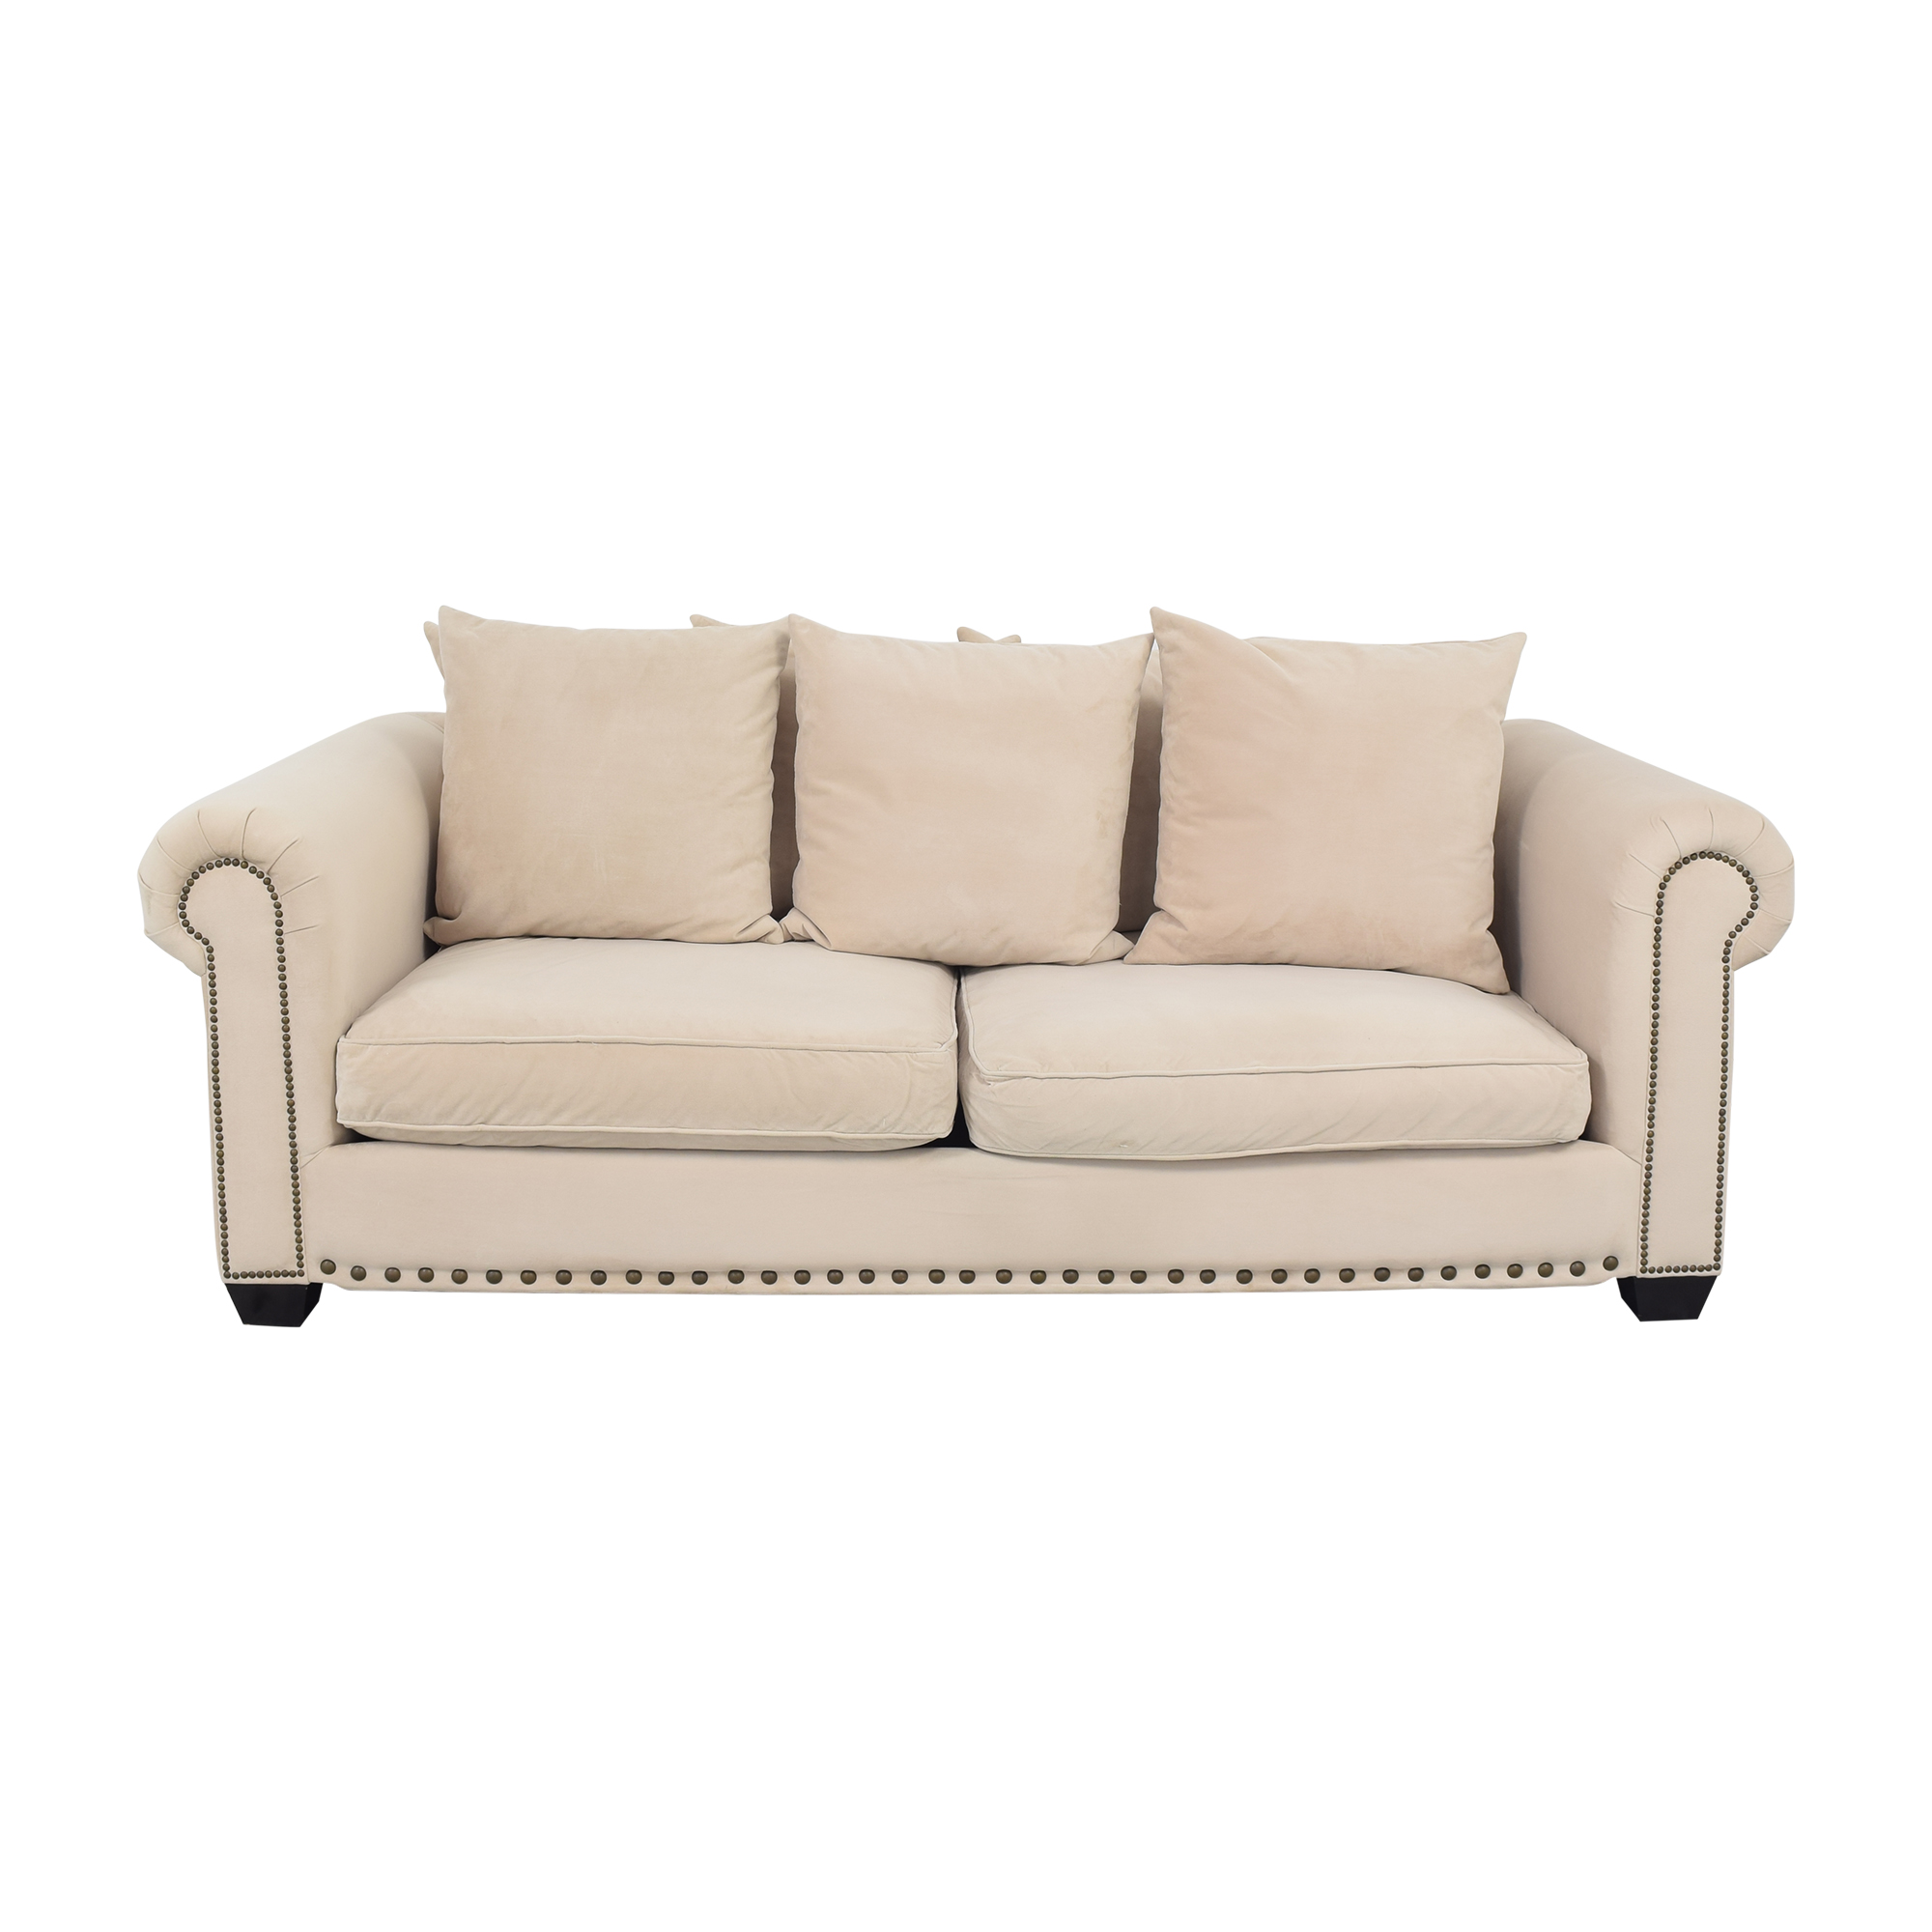 Z Gallerie Z Gallerie Linden Sofa coupon